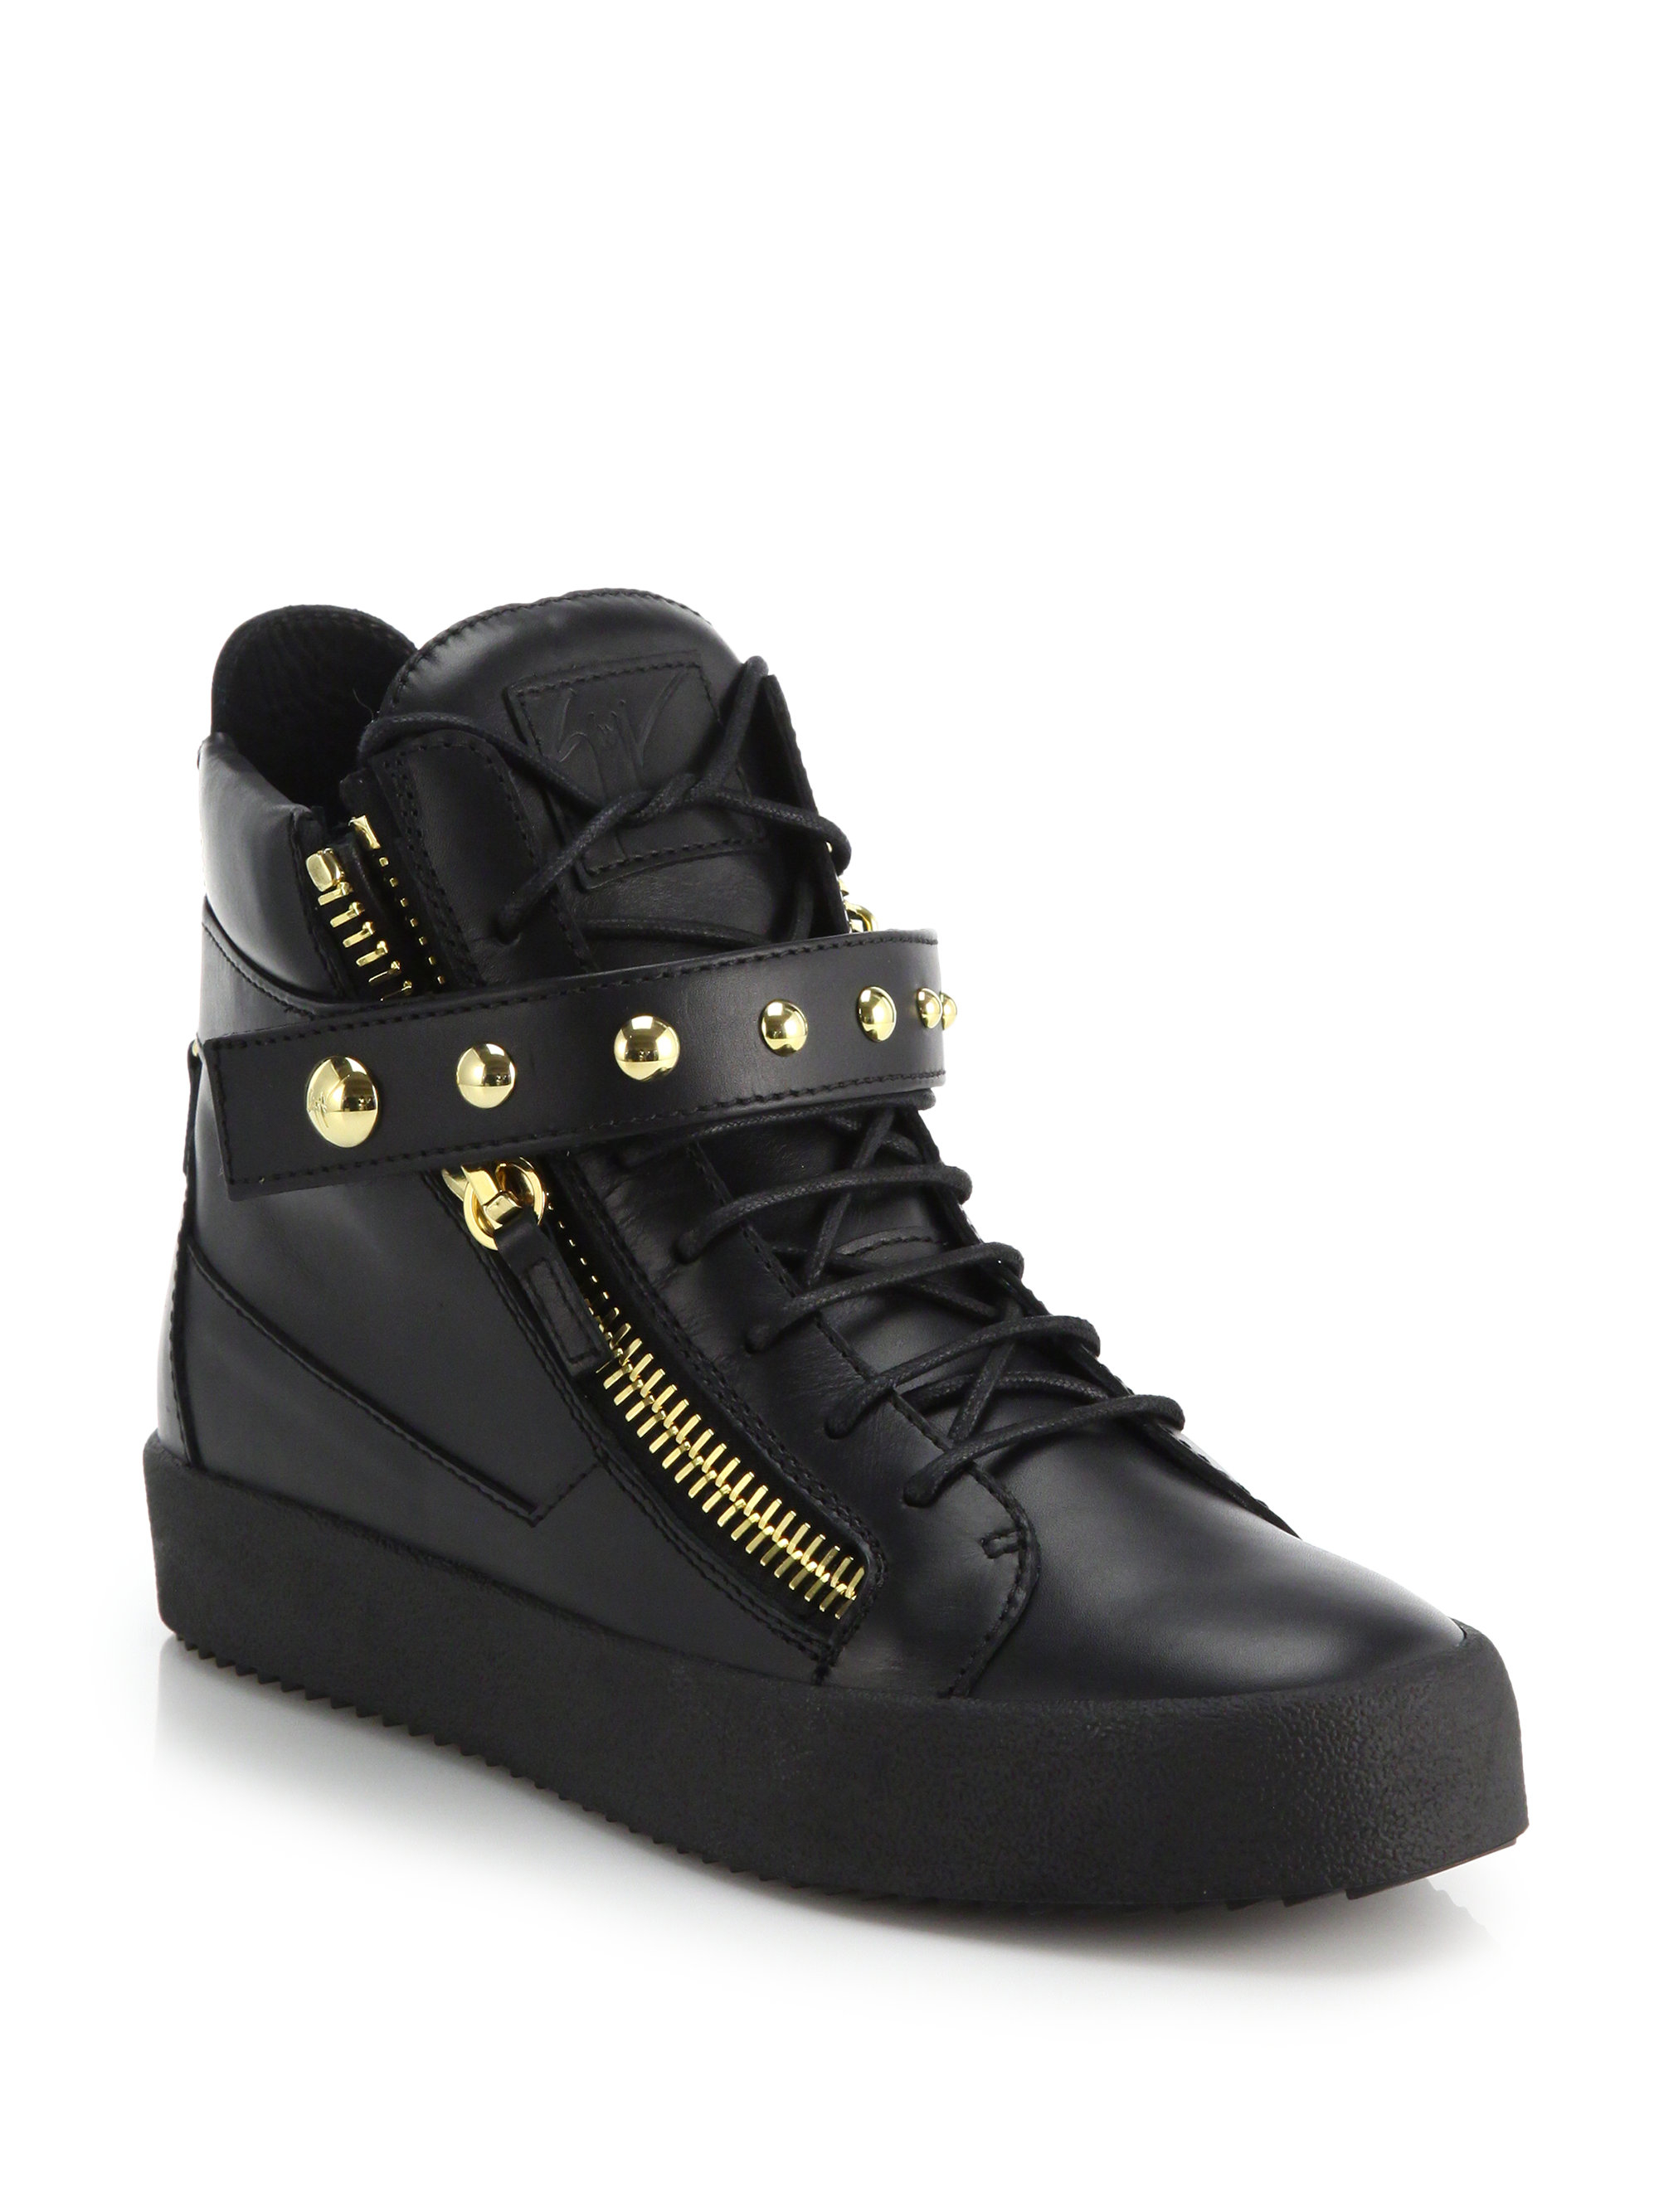 Showing mens leather high tops shoes 10% Off for New Customers: S10FF at Farfetch Leather Crown platform high top sneakers.